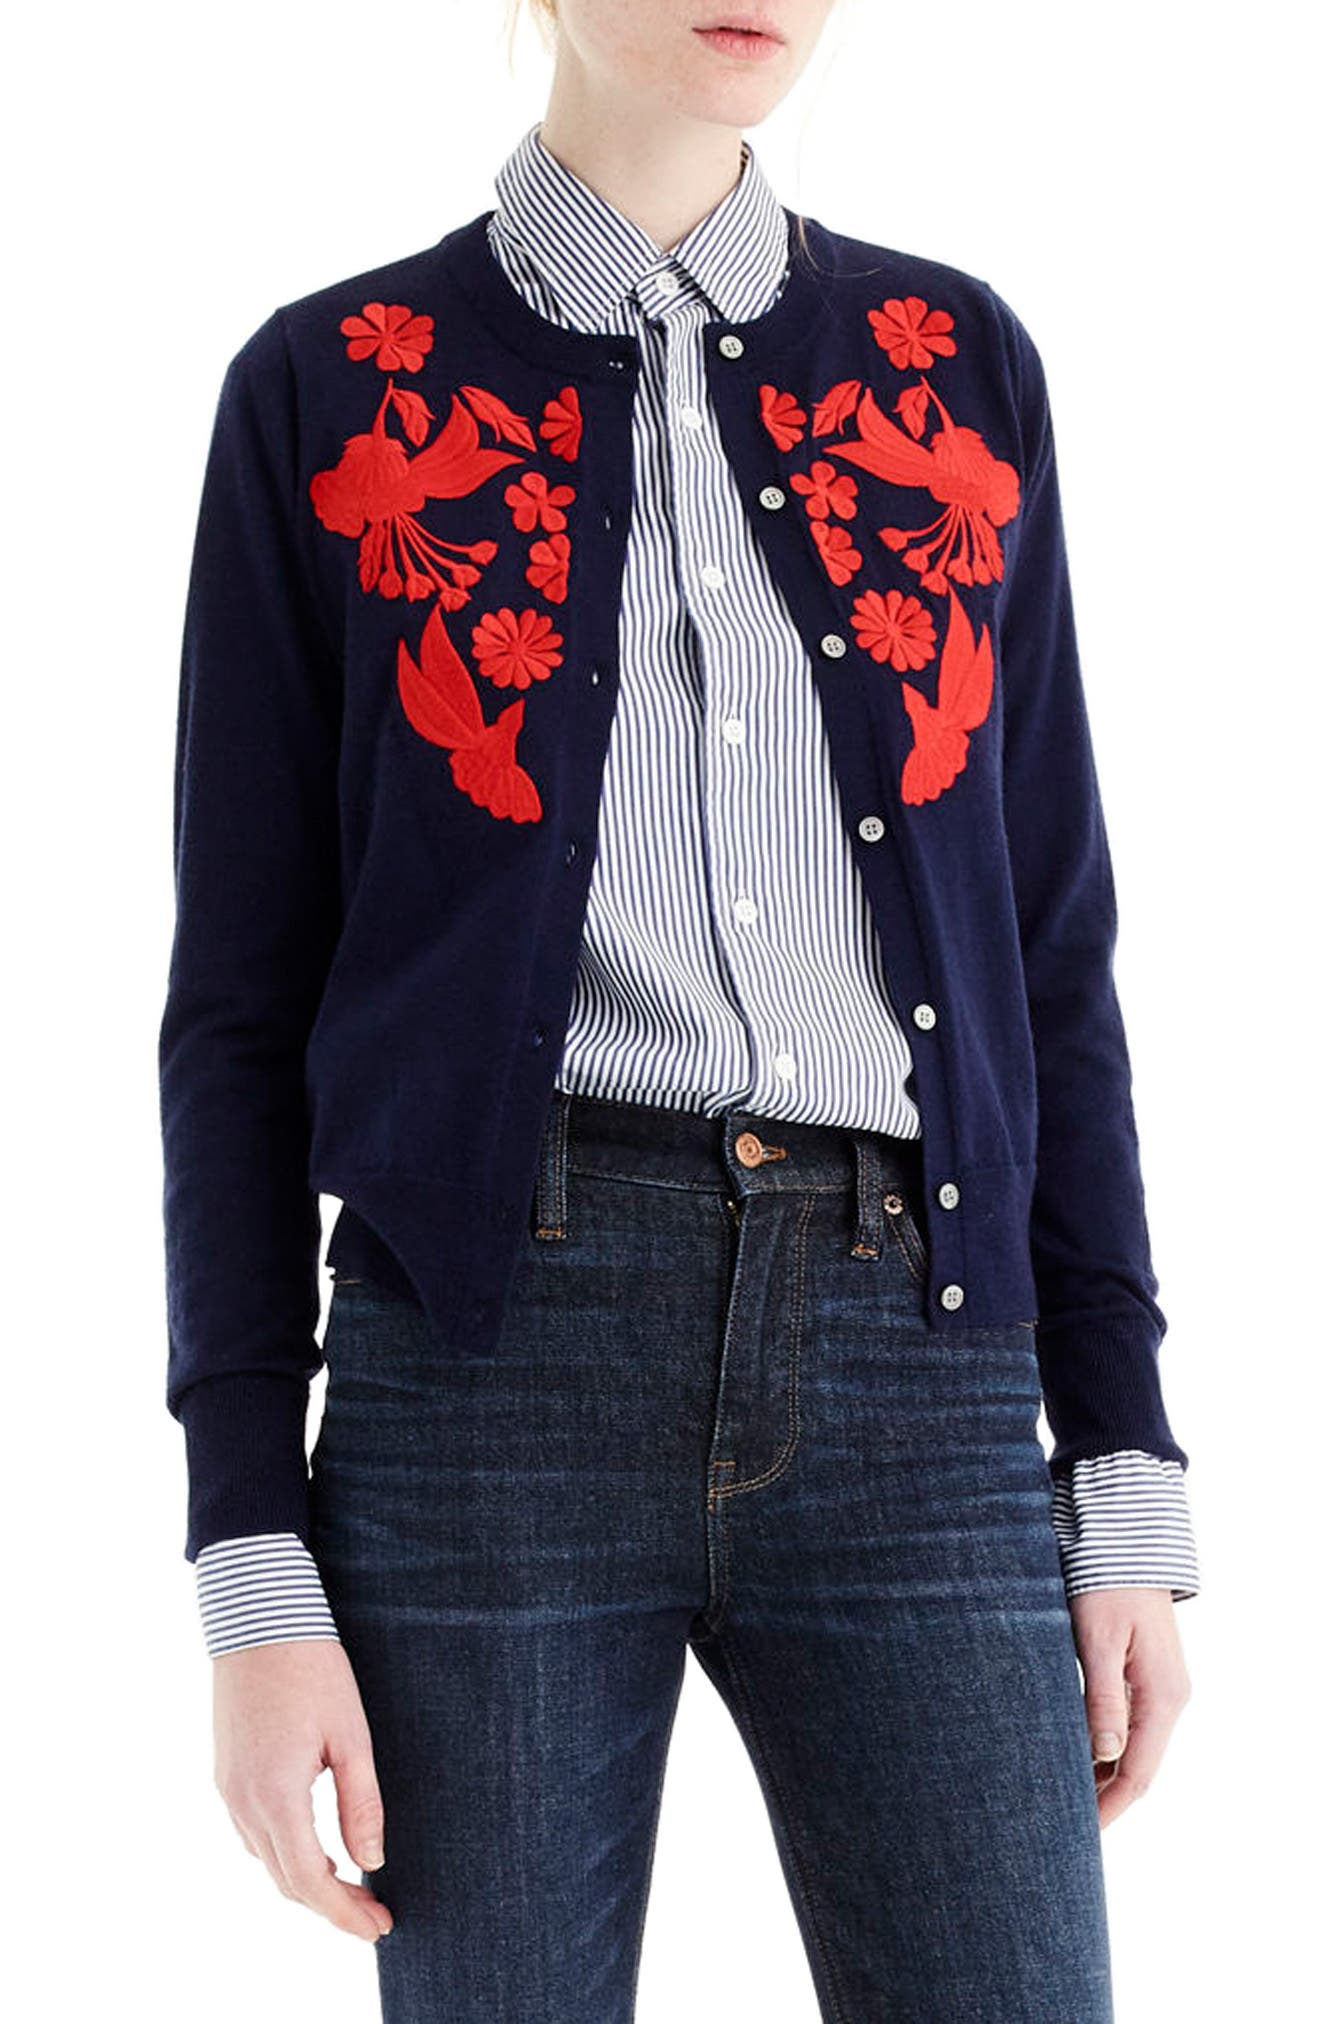 J.Crew Embroidered Lightweight Merino Wool Jackie Cardigan,                             Main thumbnail 1, color,                             Navy